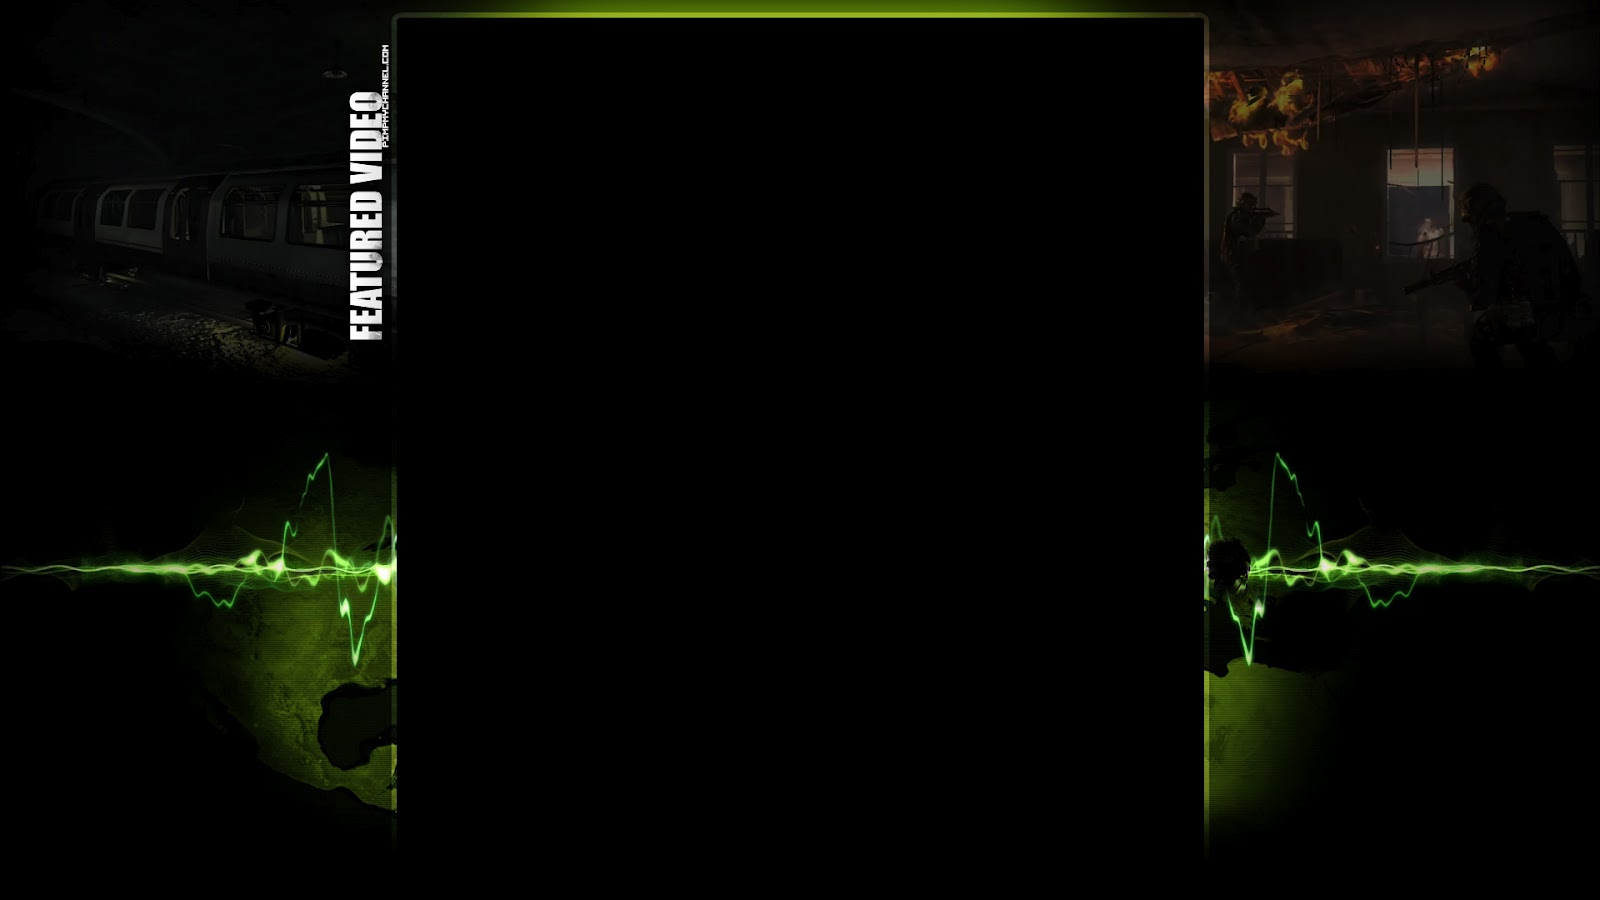 call of duty youtube background